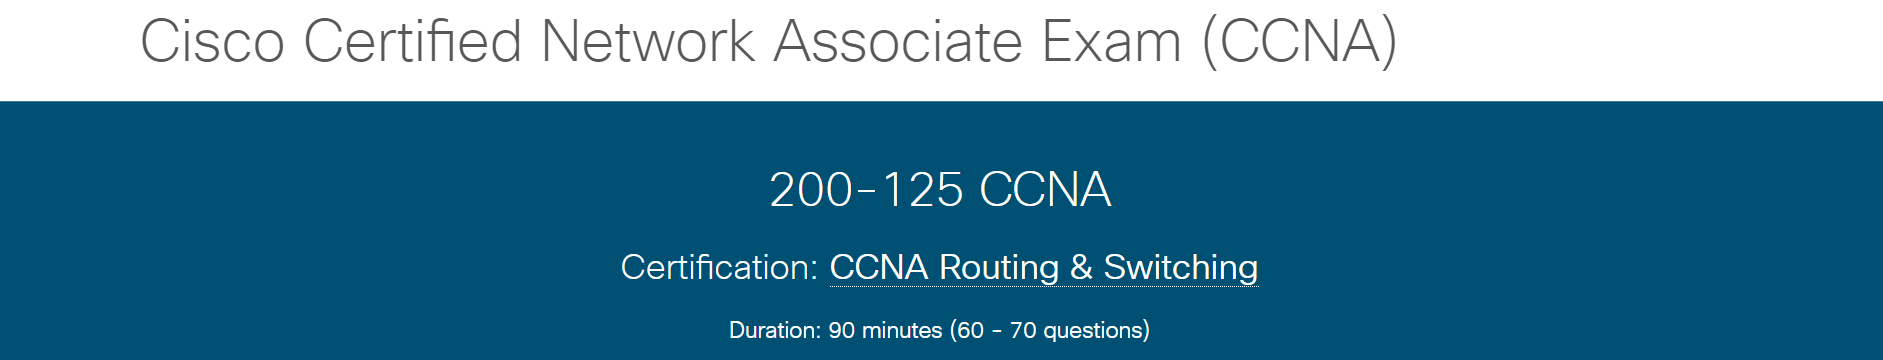 ccna-networking-course